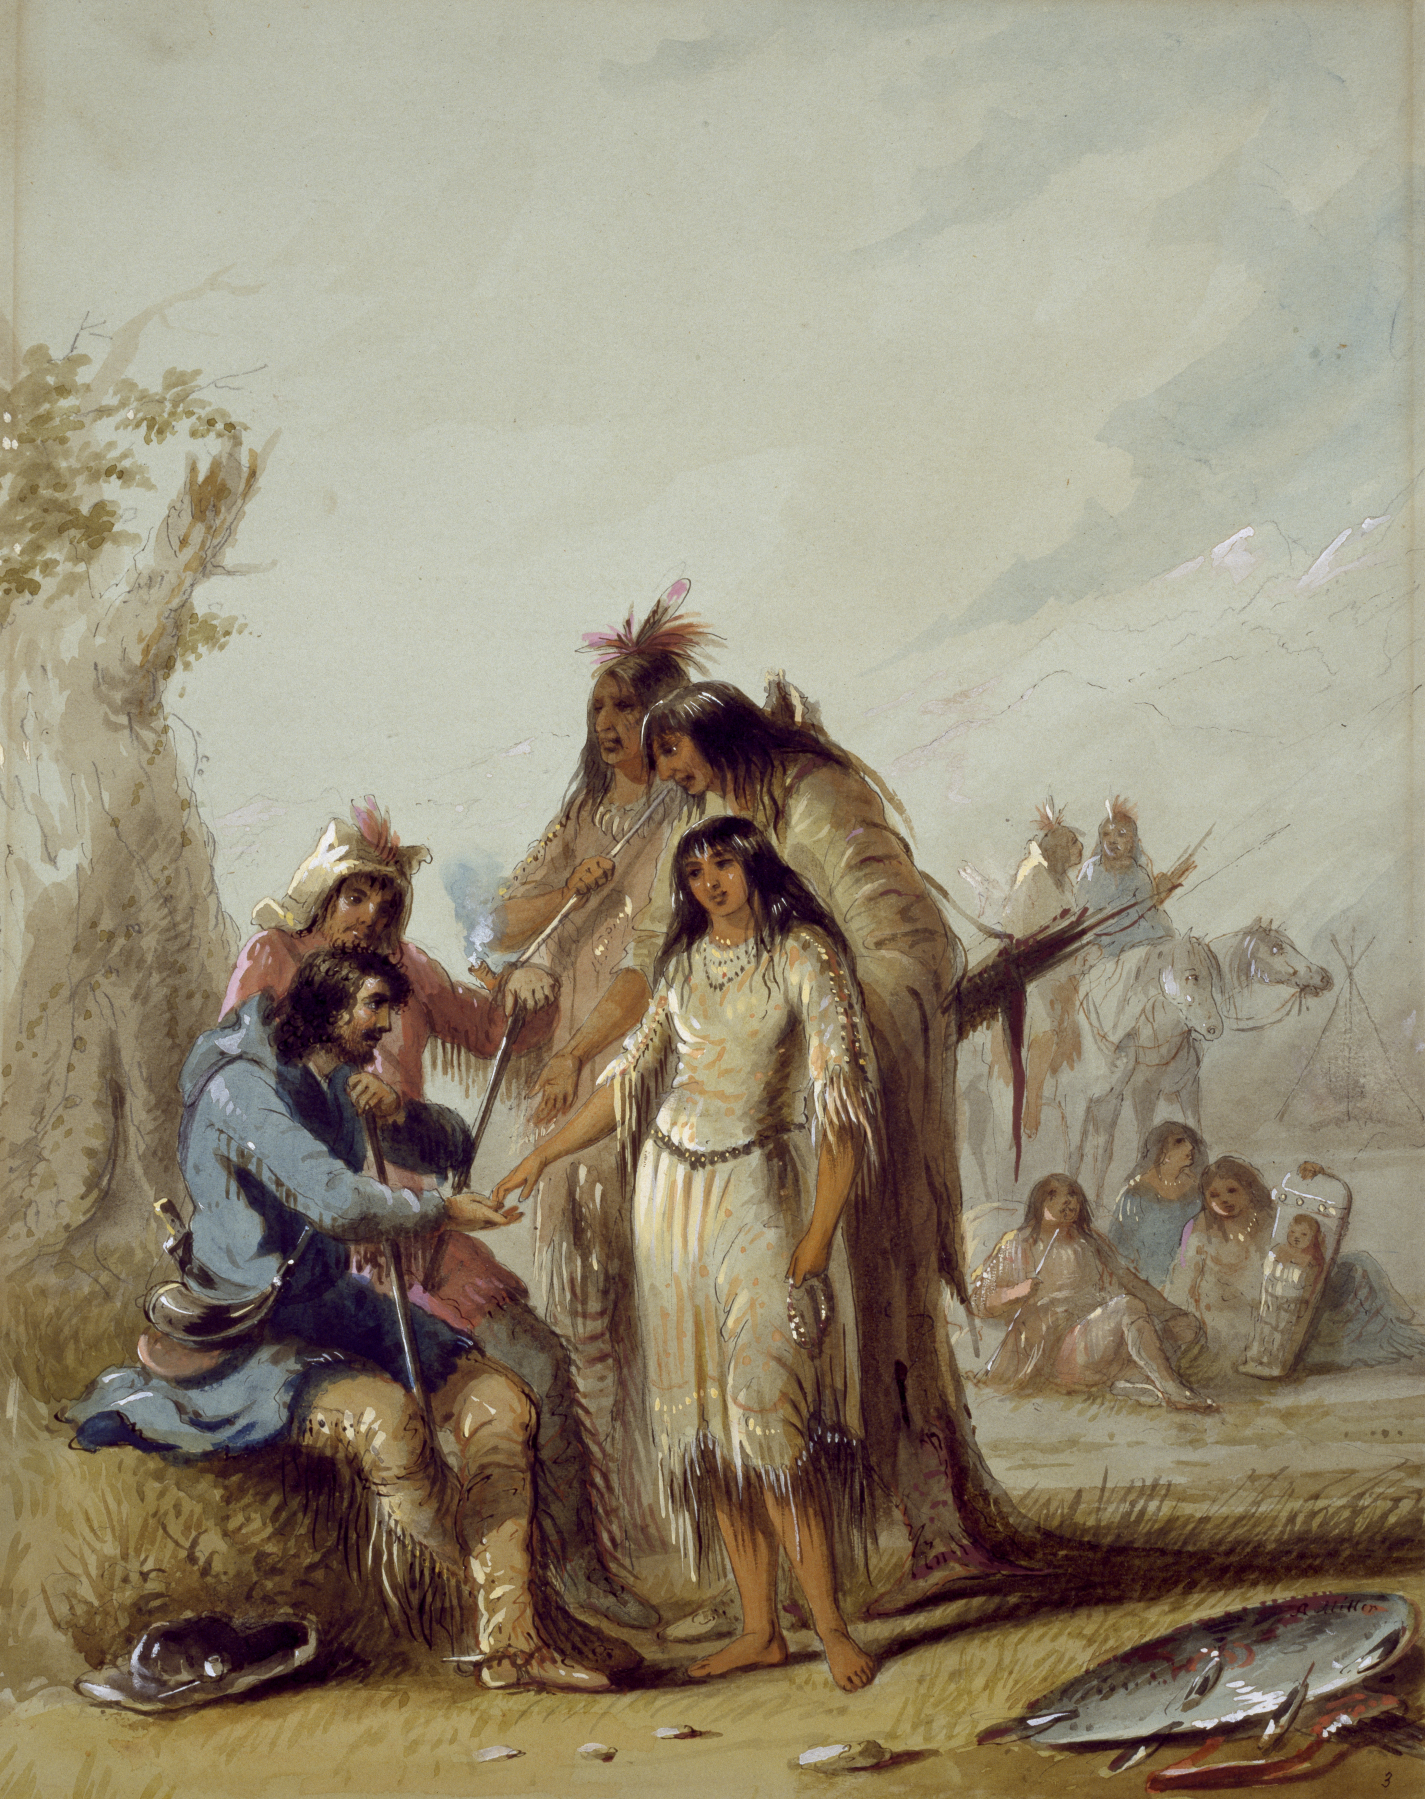 The Trapper's Bride shows a trapper, Francois, paying $600 in trade goods for an Indian woman to be his wife, circa 1837.